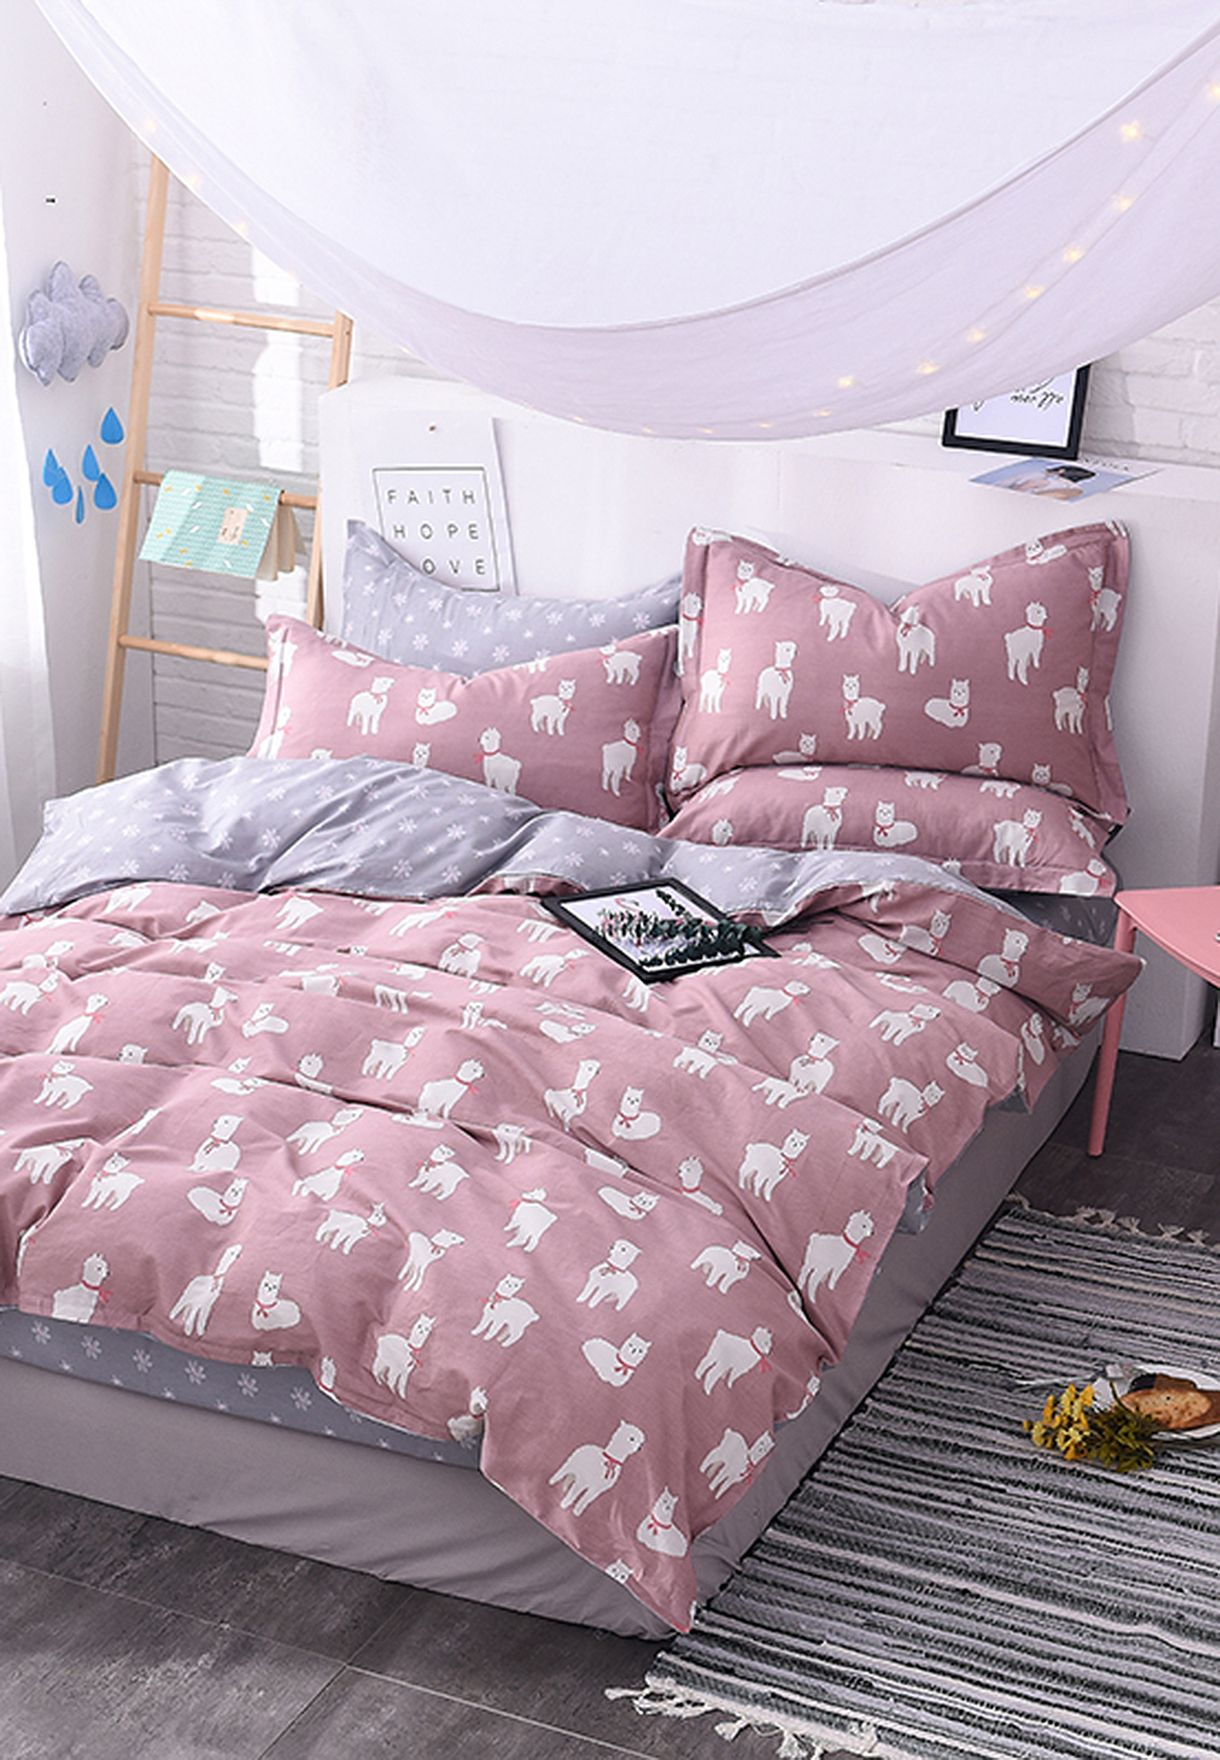 Reversible Llama and Floral King Size Bedding Set - 200x230cm